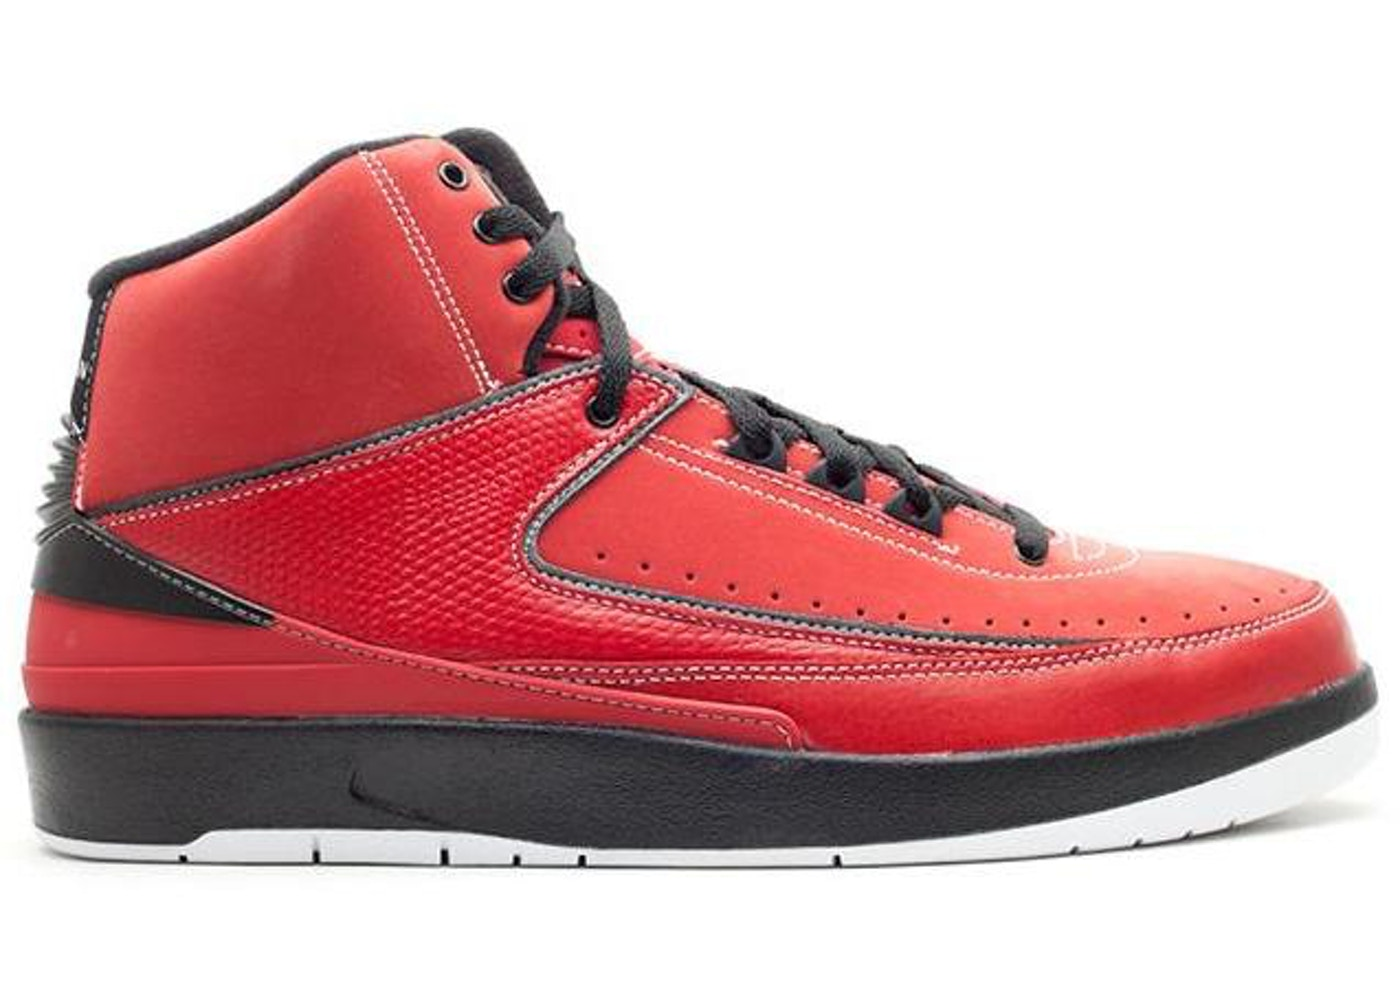 new style 7757a 64382 Jordan 2 Retro QF Candy Pack Red - 395709-601